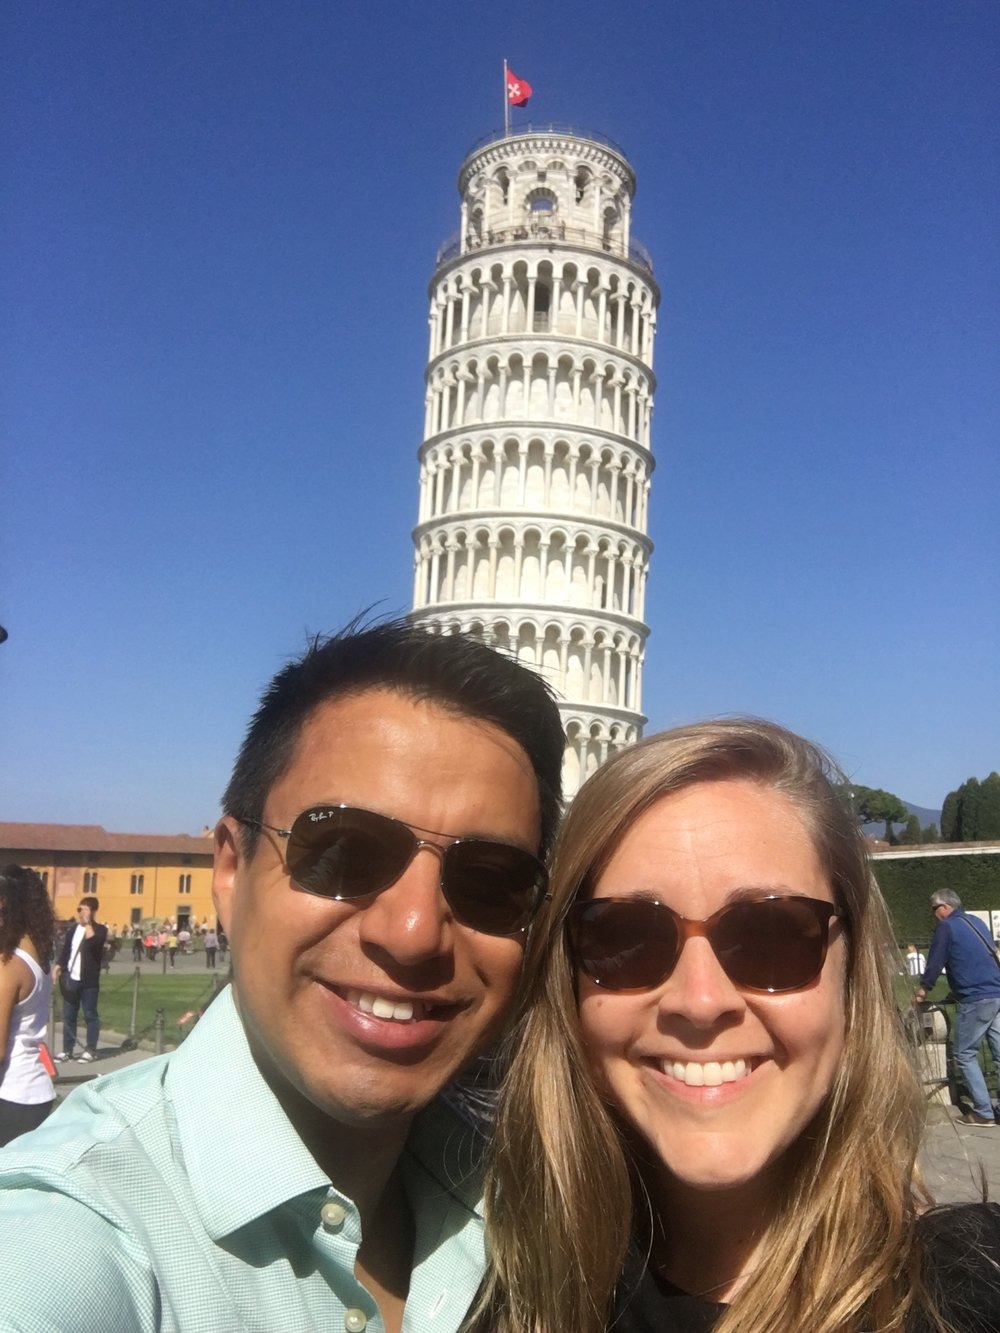 Exploring Pisa on our own for the day.